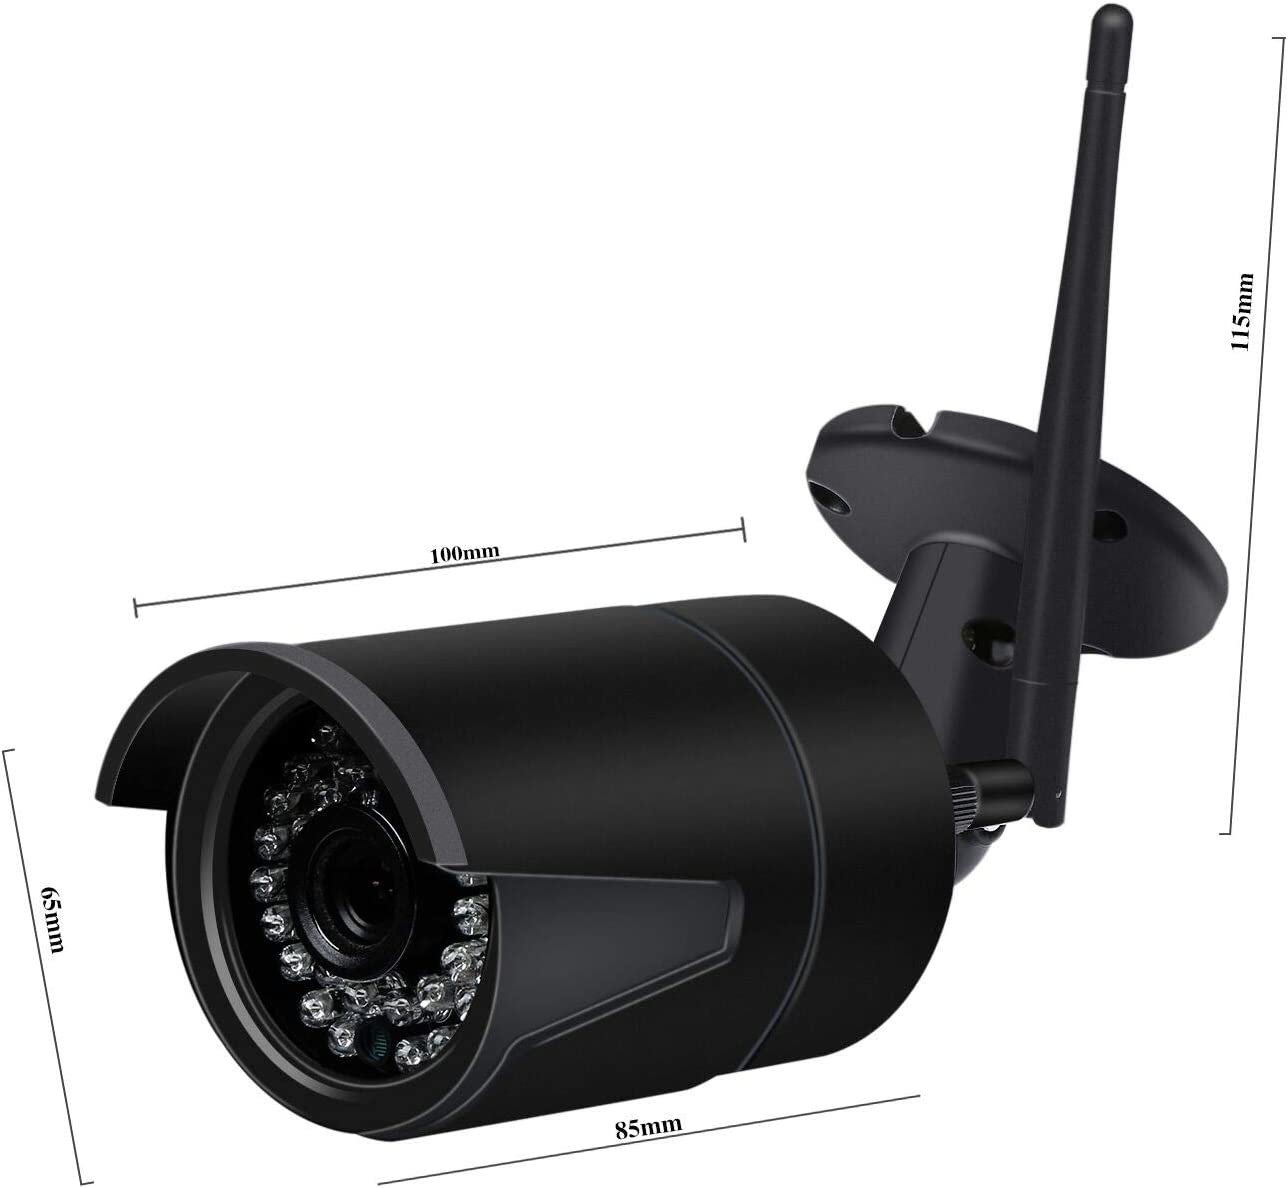 YUMUN 720P WiFi Bullet Camera IR Night Version Security Surveillance IP Camera IP66 Weatherproof for Outdoor and Indoor 2.4GHz No-Bullit-in SD Card Powered by Adaptor Black